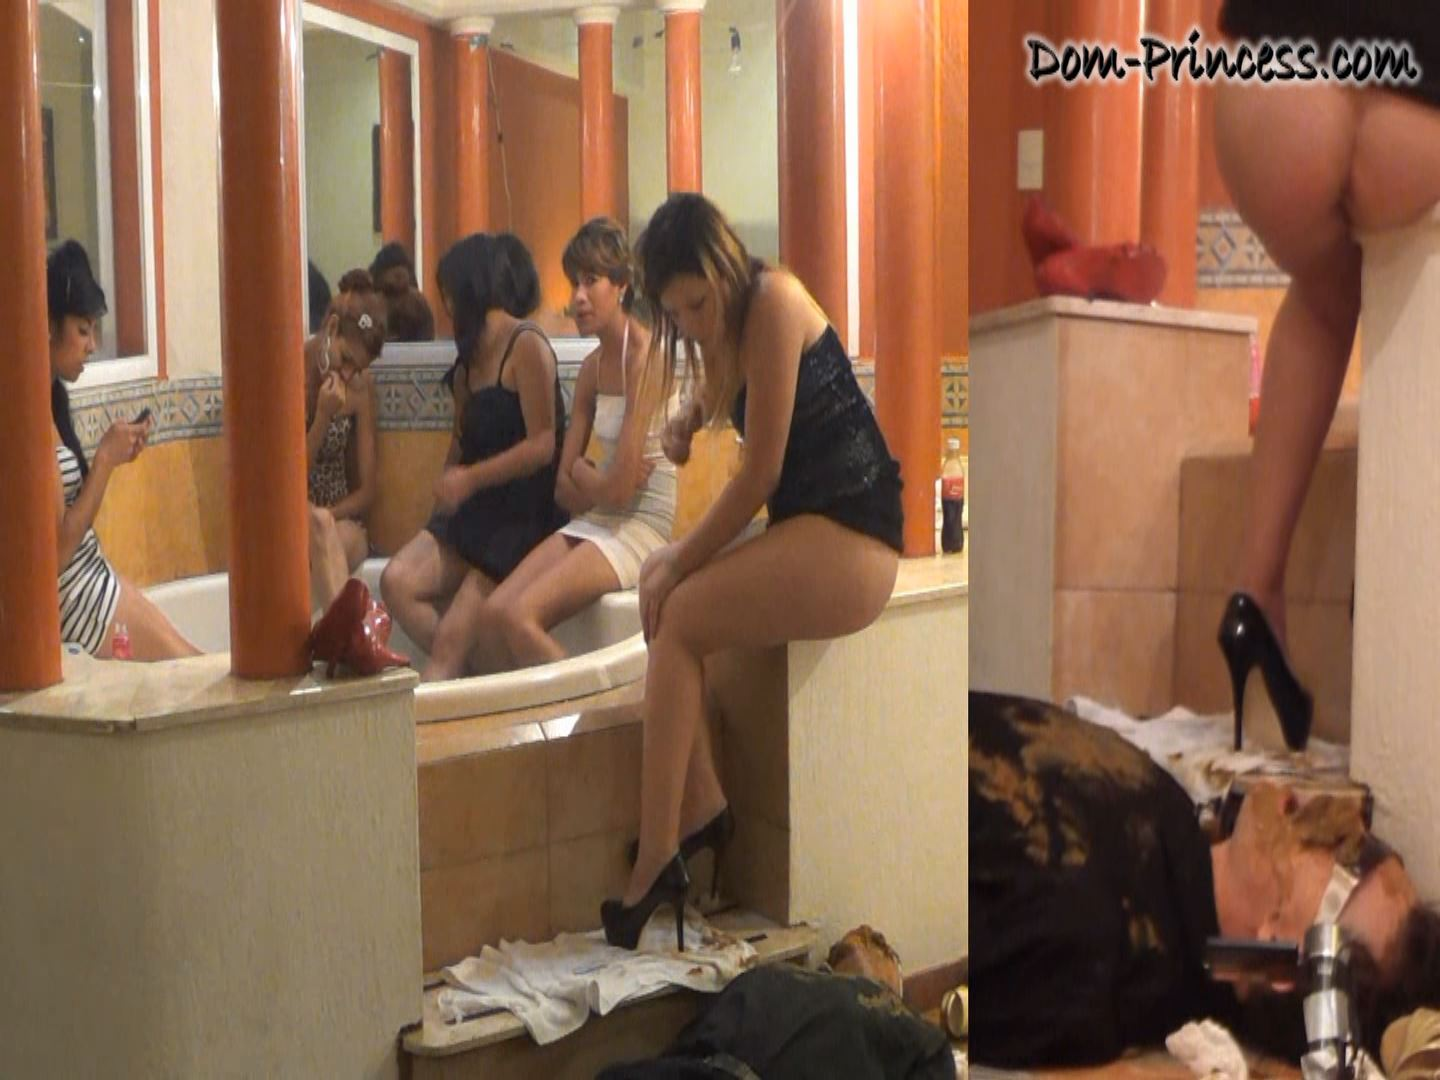 [DOM-PRINCESS] The Jacuzzi Toilet Man Part 7 Merica [FULL HD][1080p][WMV]